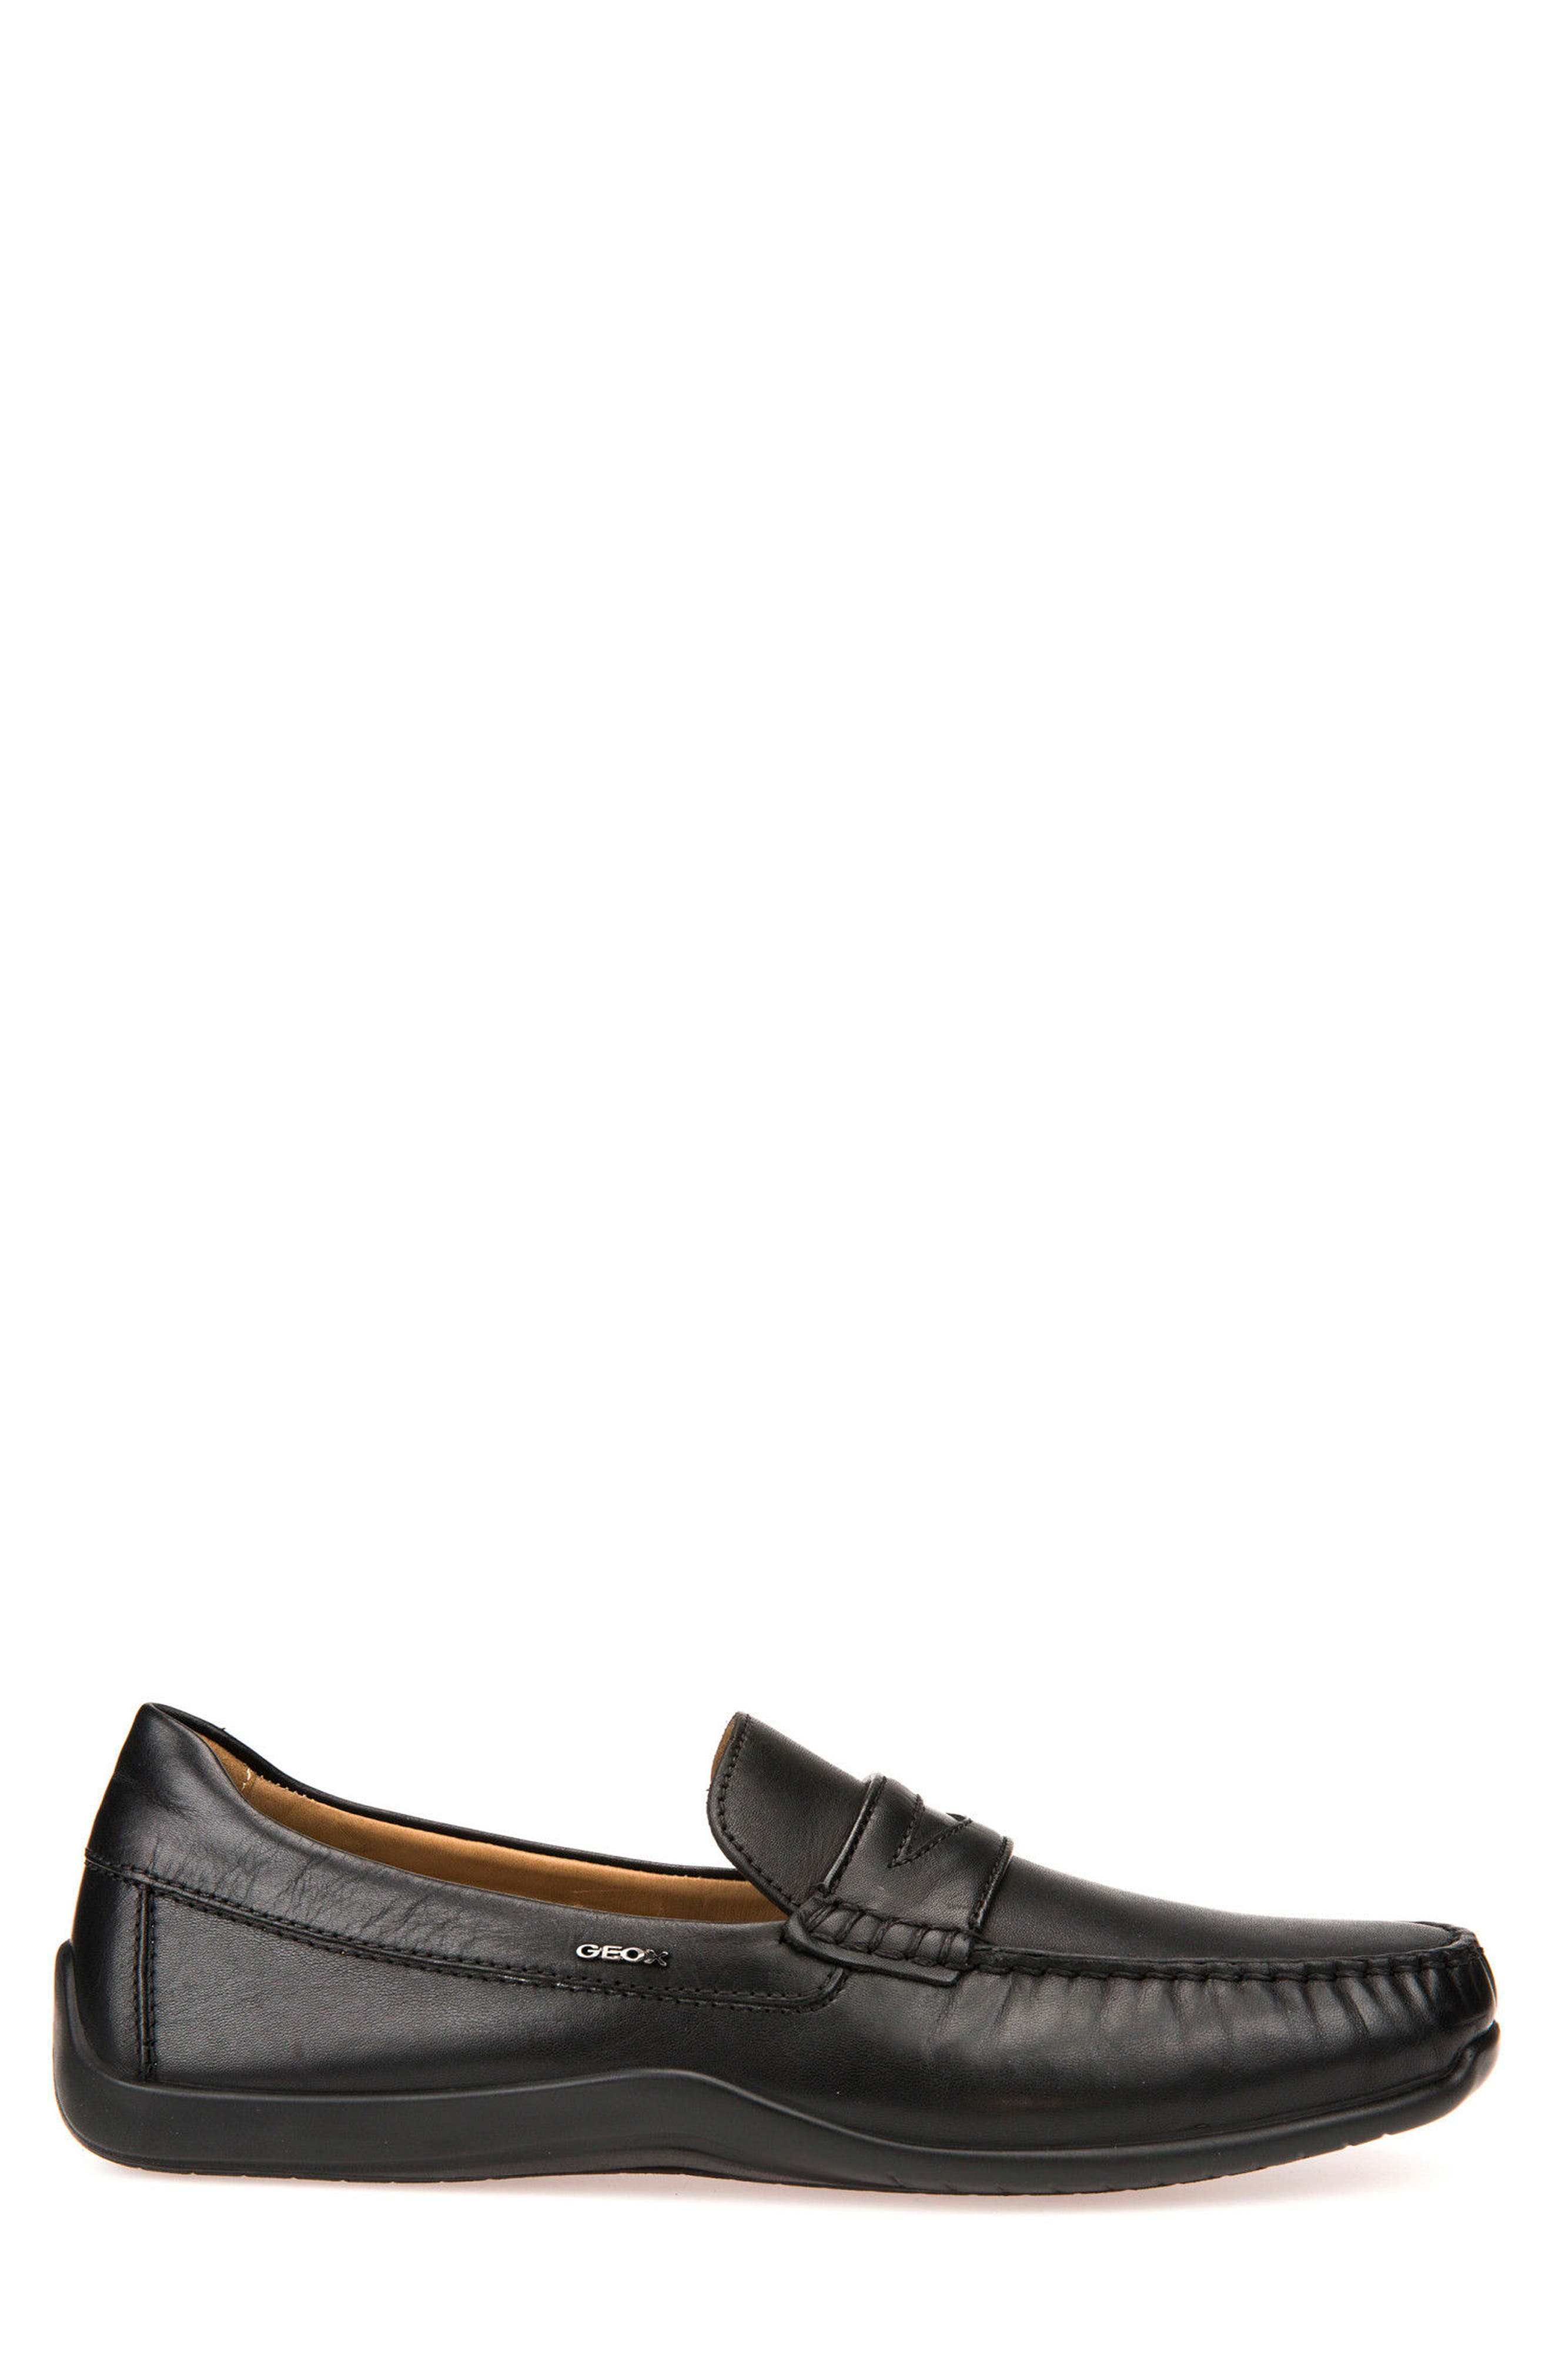 Xense Penny Loafer,                             Alternate thumbnail 3, color,                             001